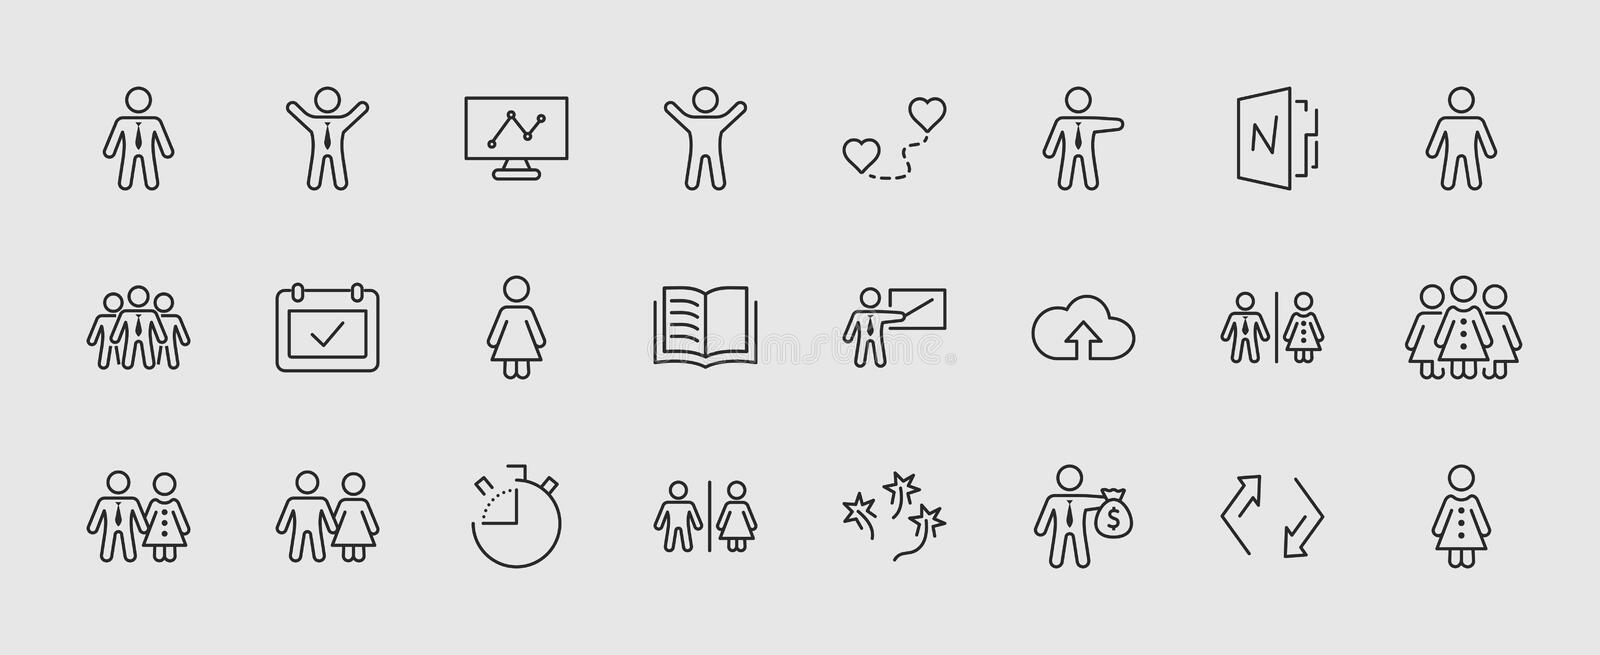 Set of people vector line icons. It contains the symbols of a man, a woman, a family, a toilet, a businessman, a teacher royalty free illustration